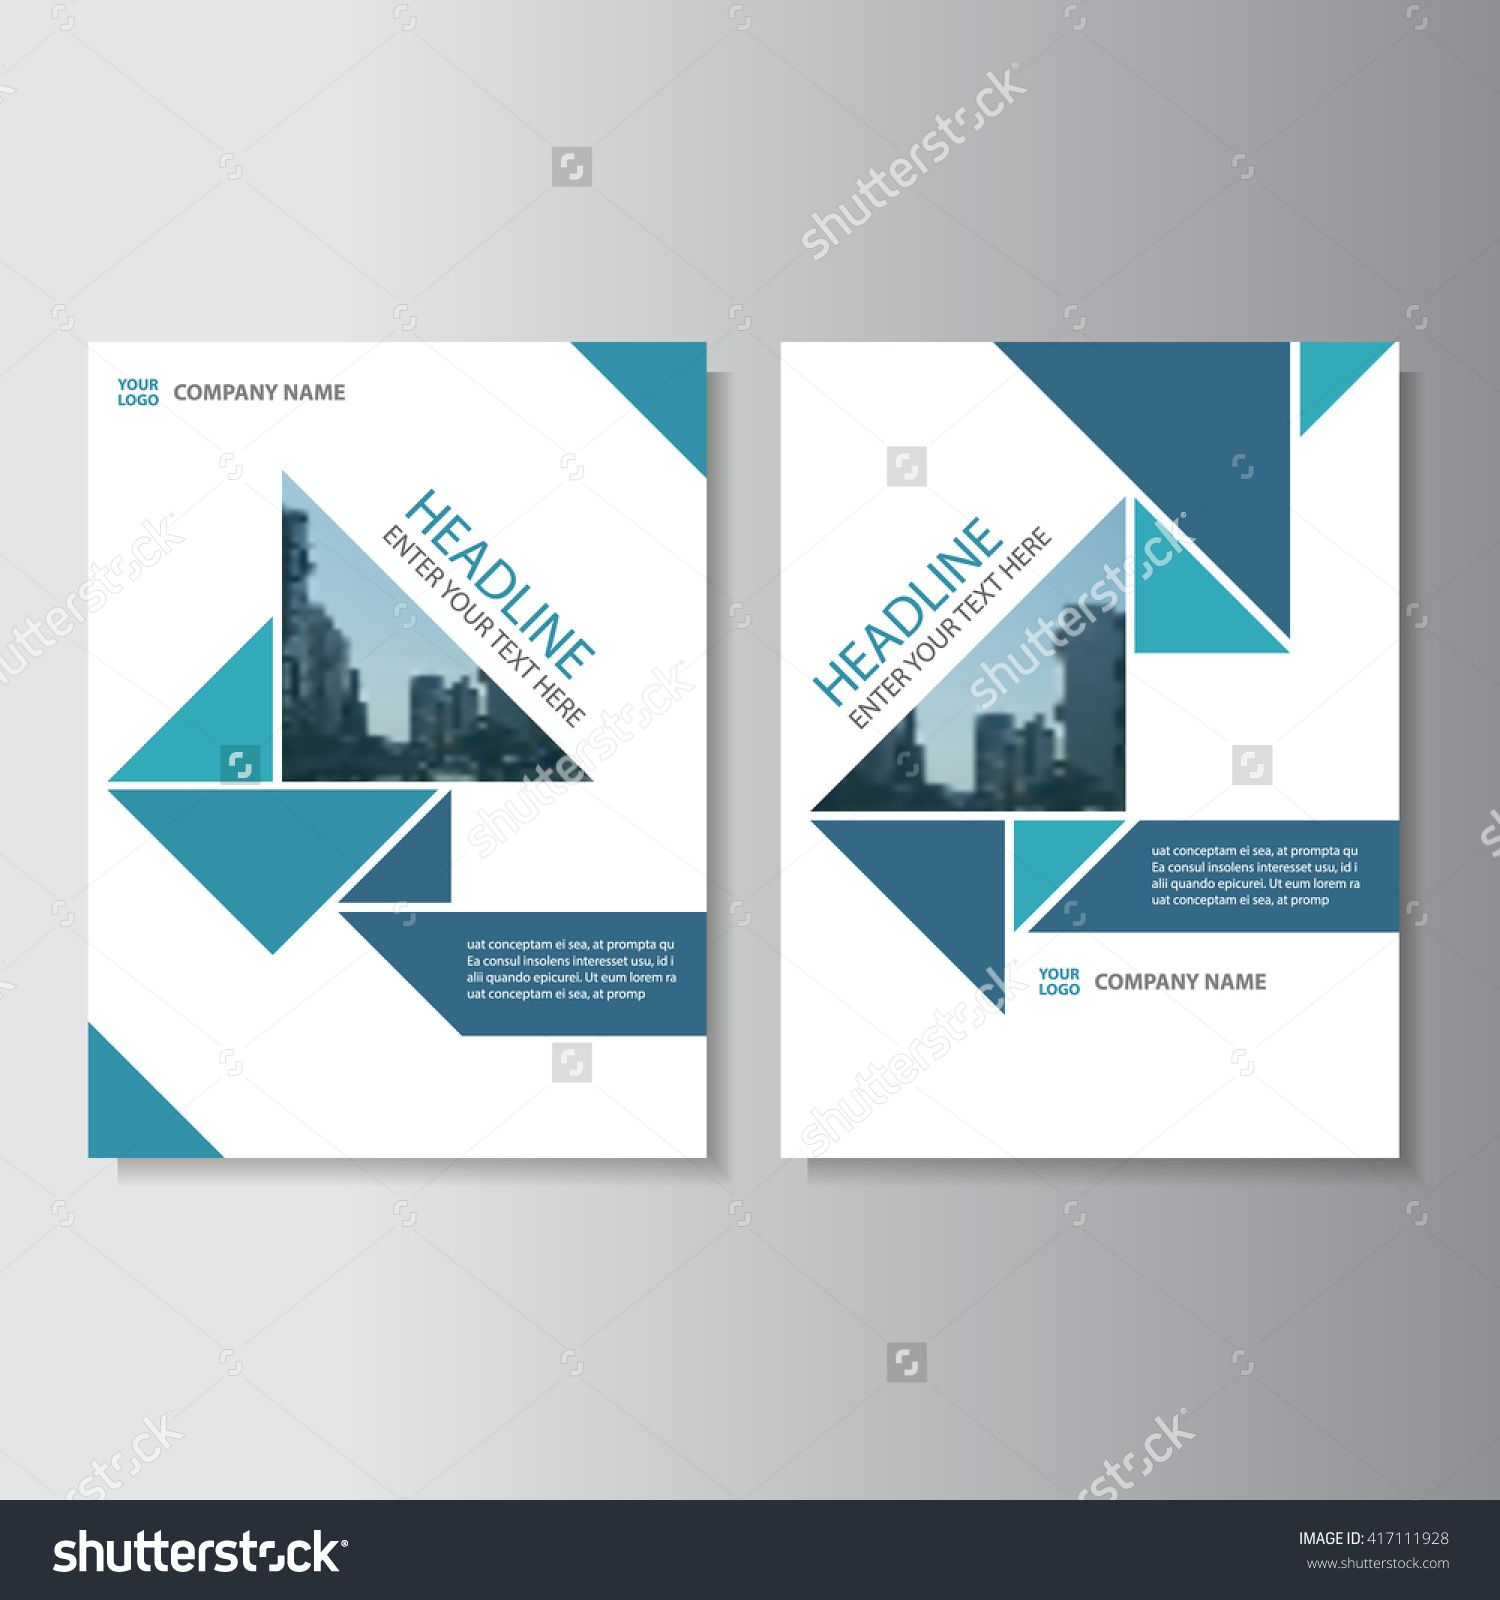 Book Cover Design Template | Blue Triangle Vector Annual Report Leaflet Brochure Flyer Template